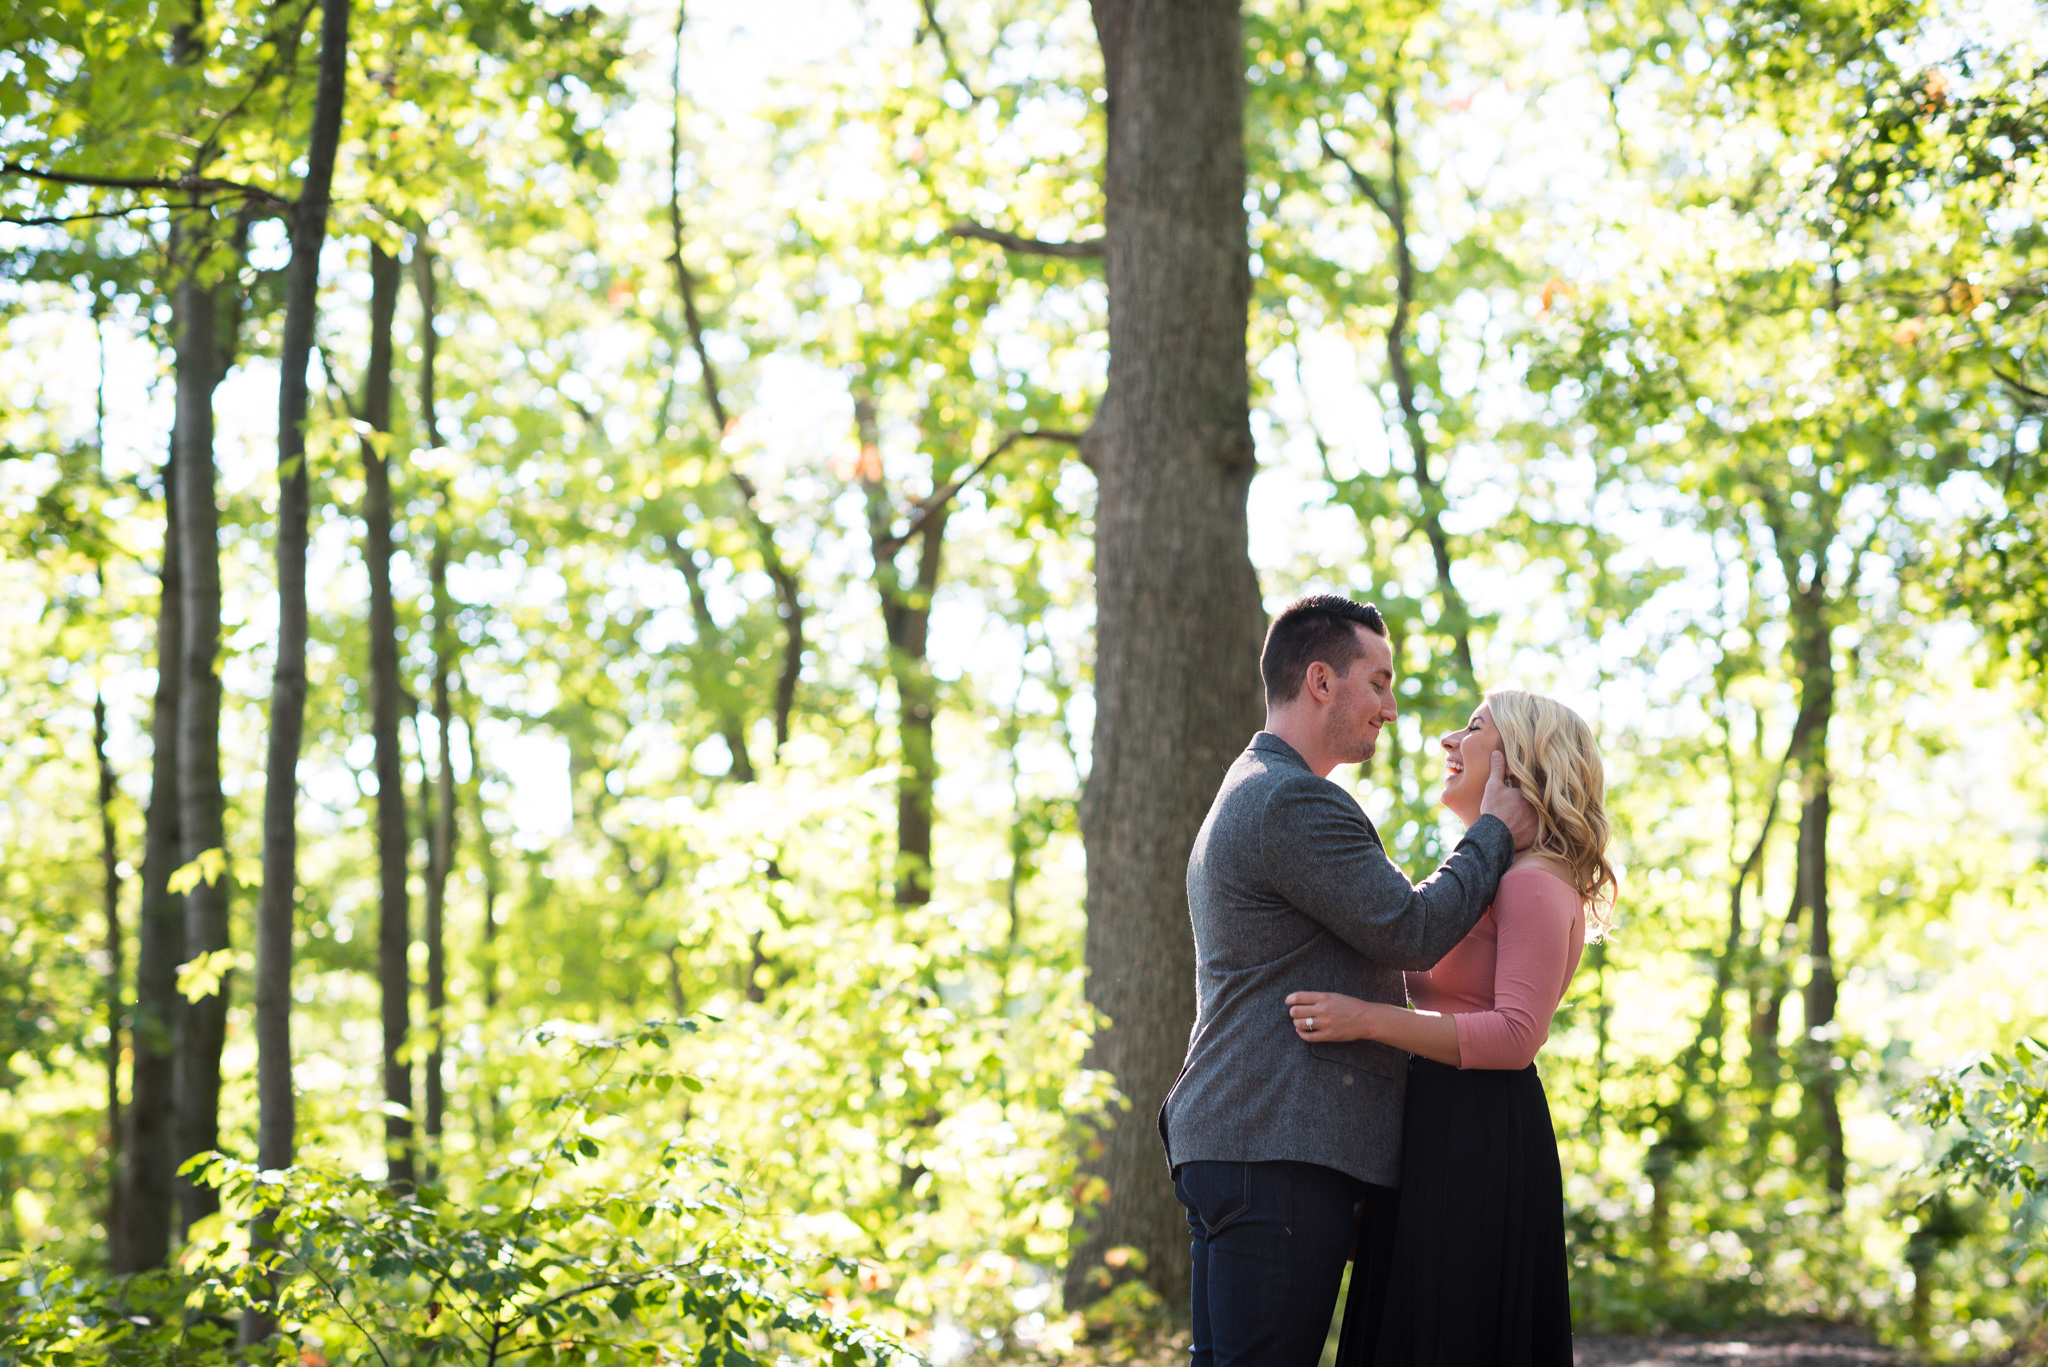 Mindy-Engagement-photography-wedding-photographer-northeast-PA-Scranton-Poconos-10.jpg